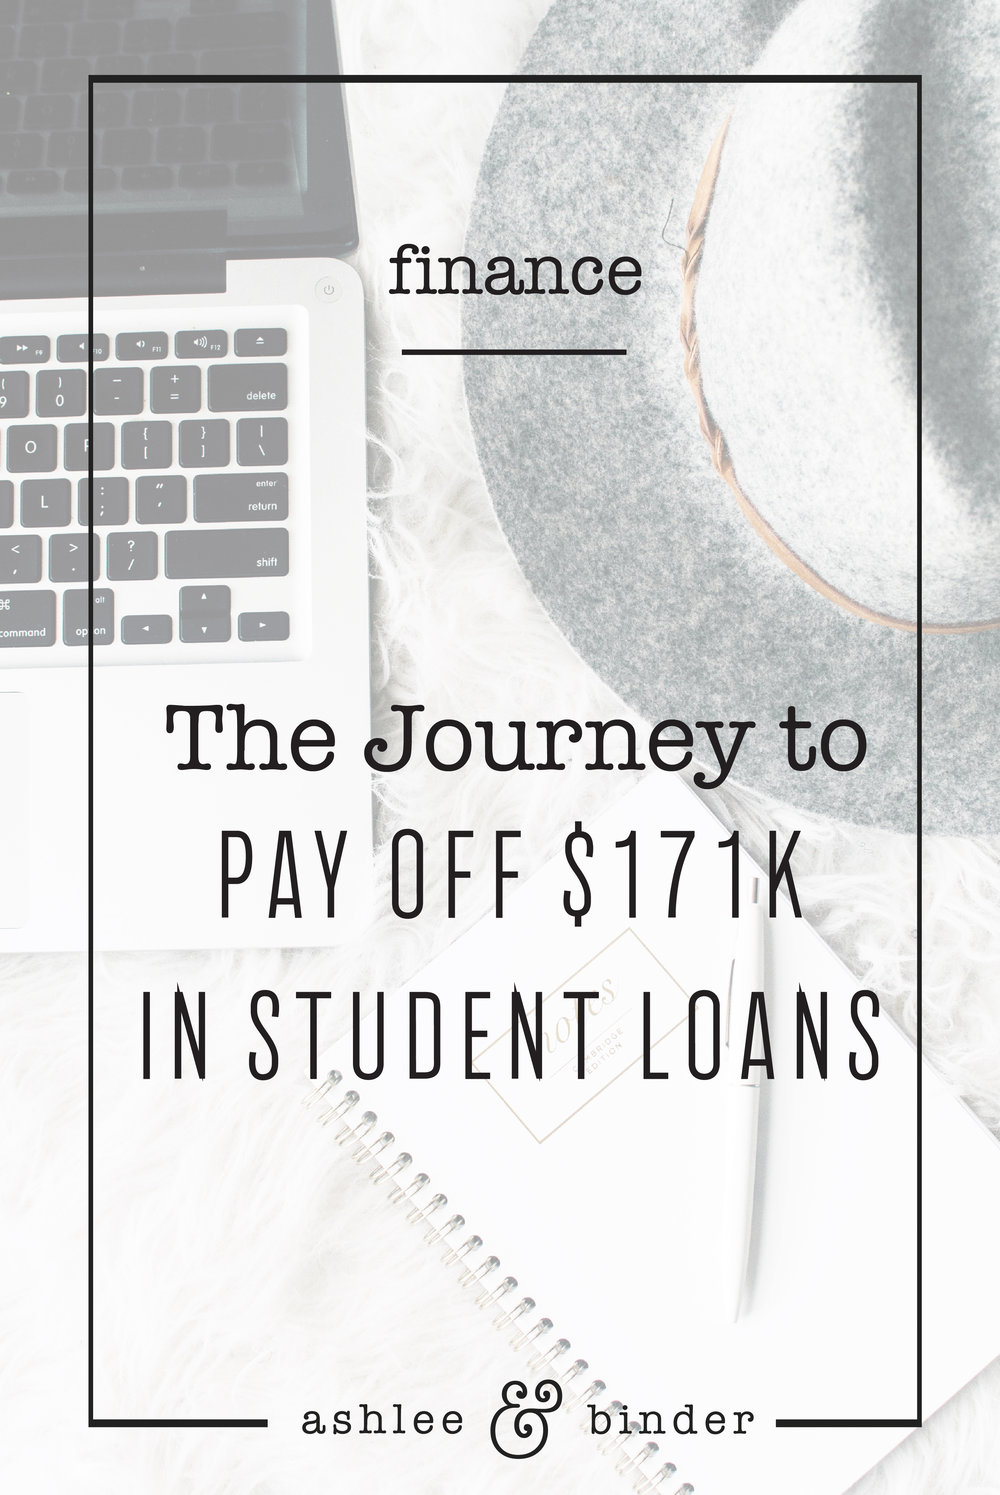 The Journey to Pay off $171K in Student Loan Debt